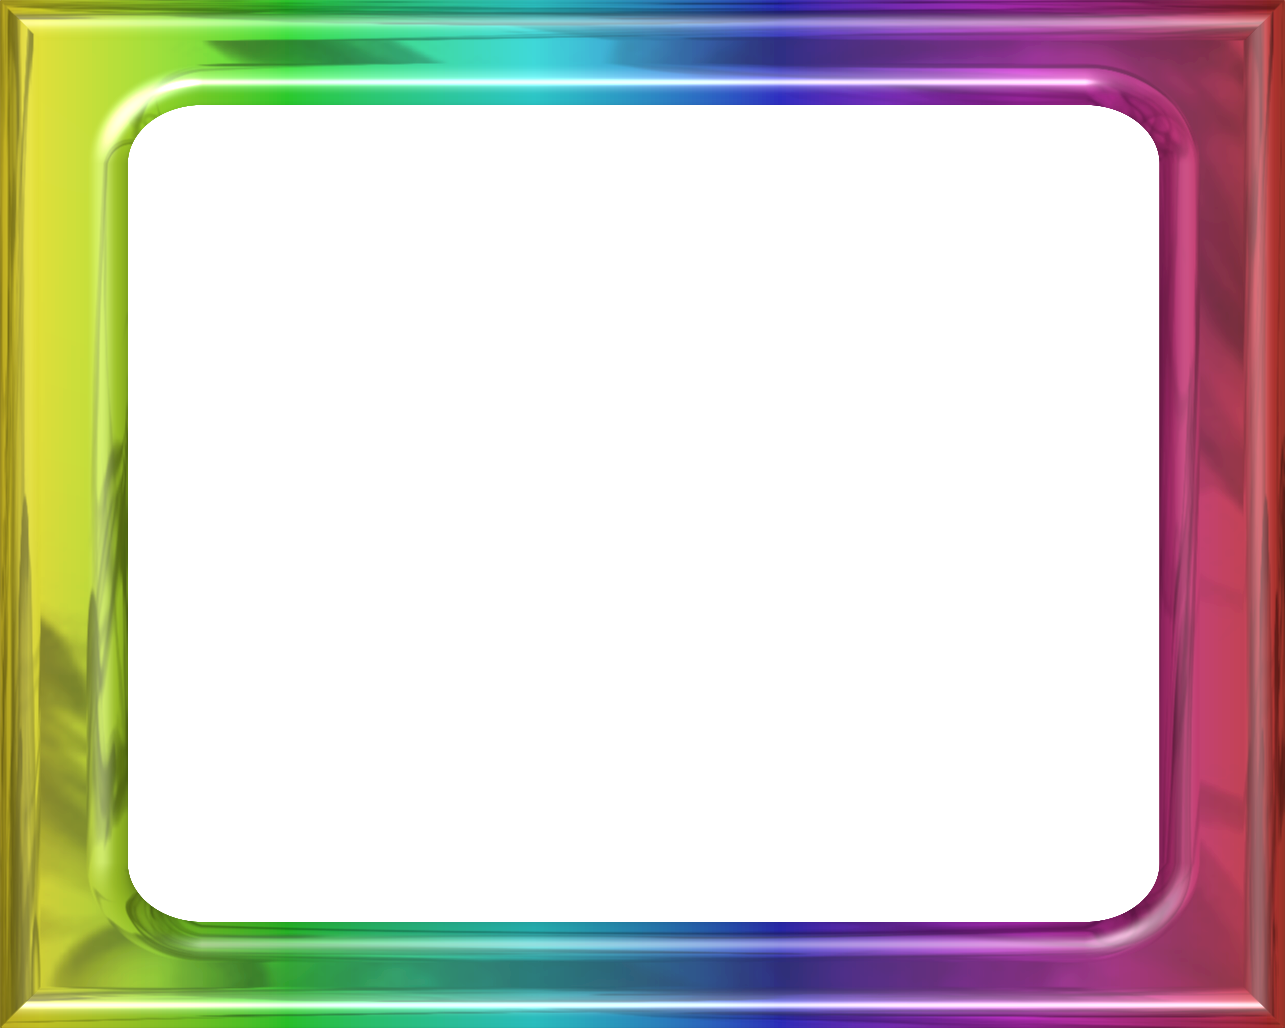 Rainbow frame png. Framess co by lashonda